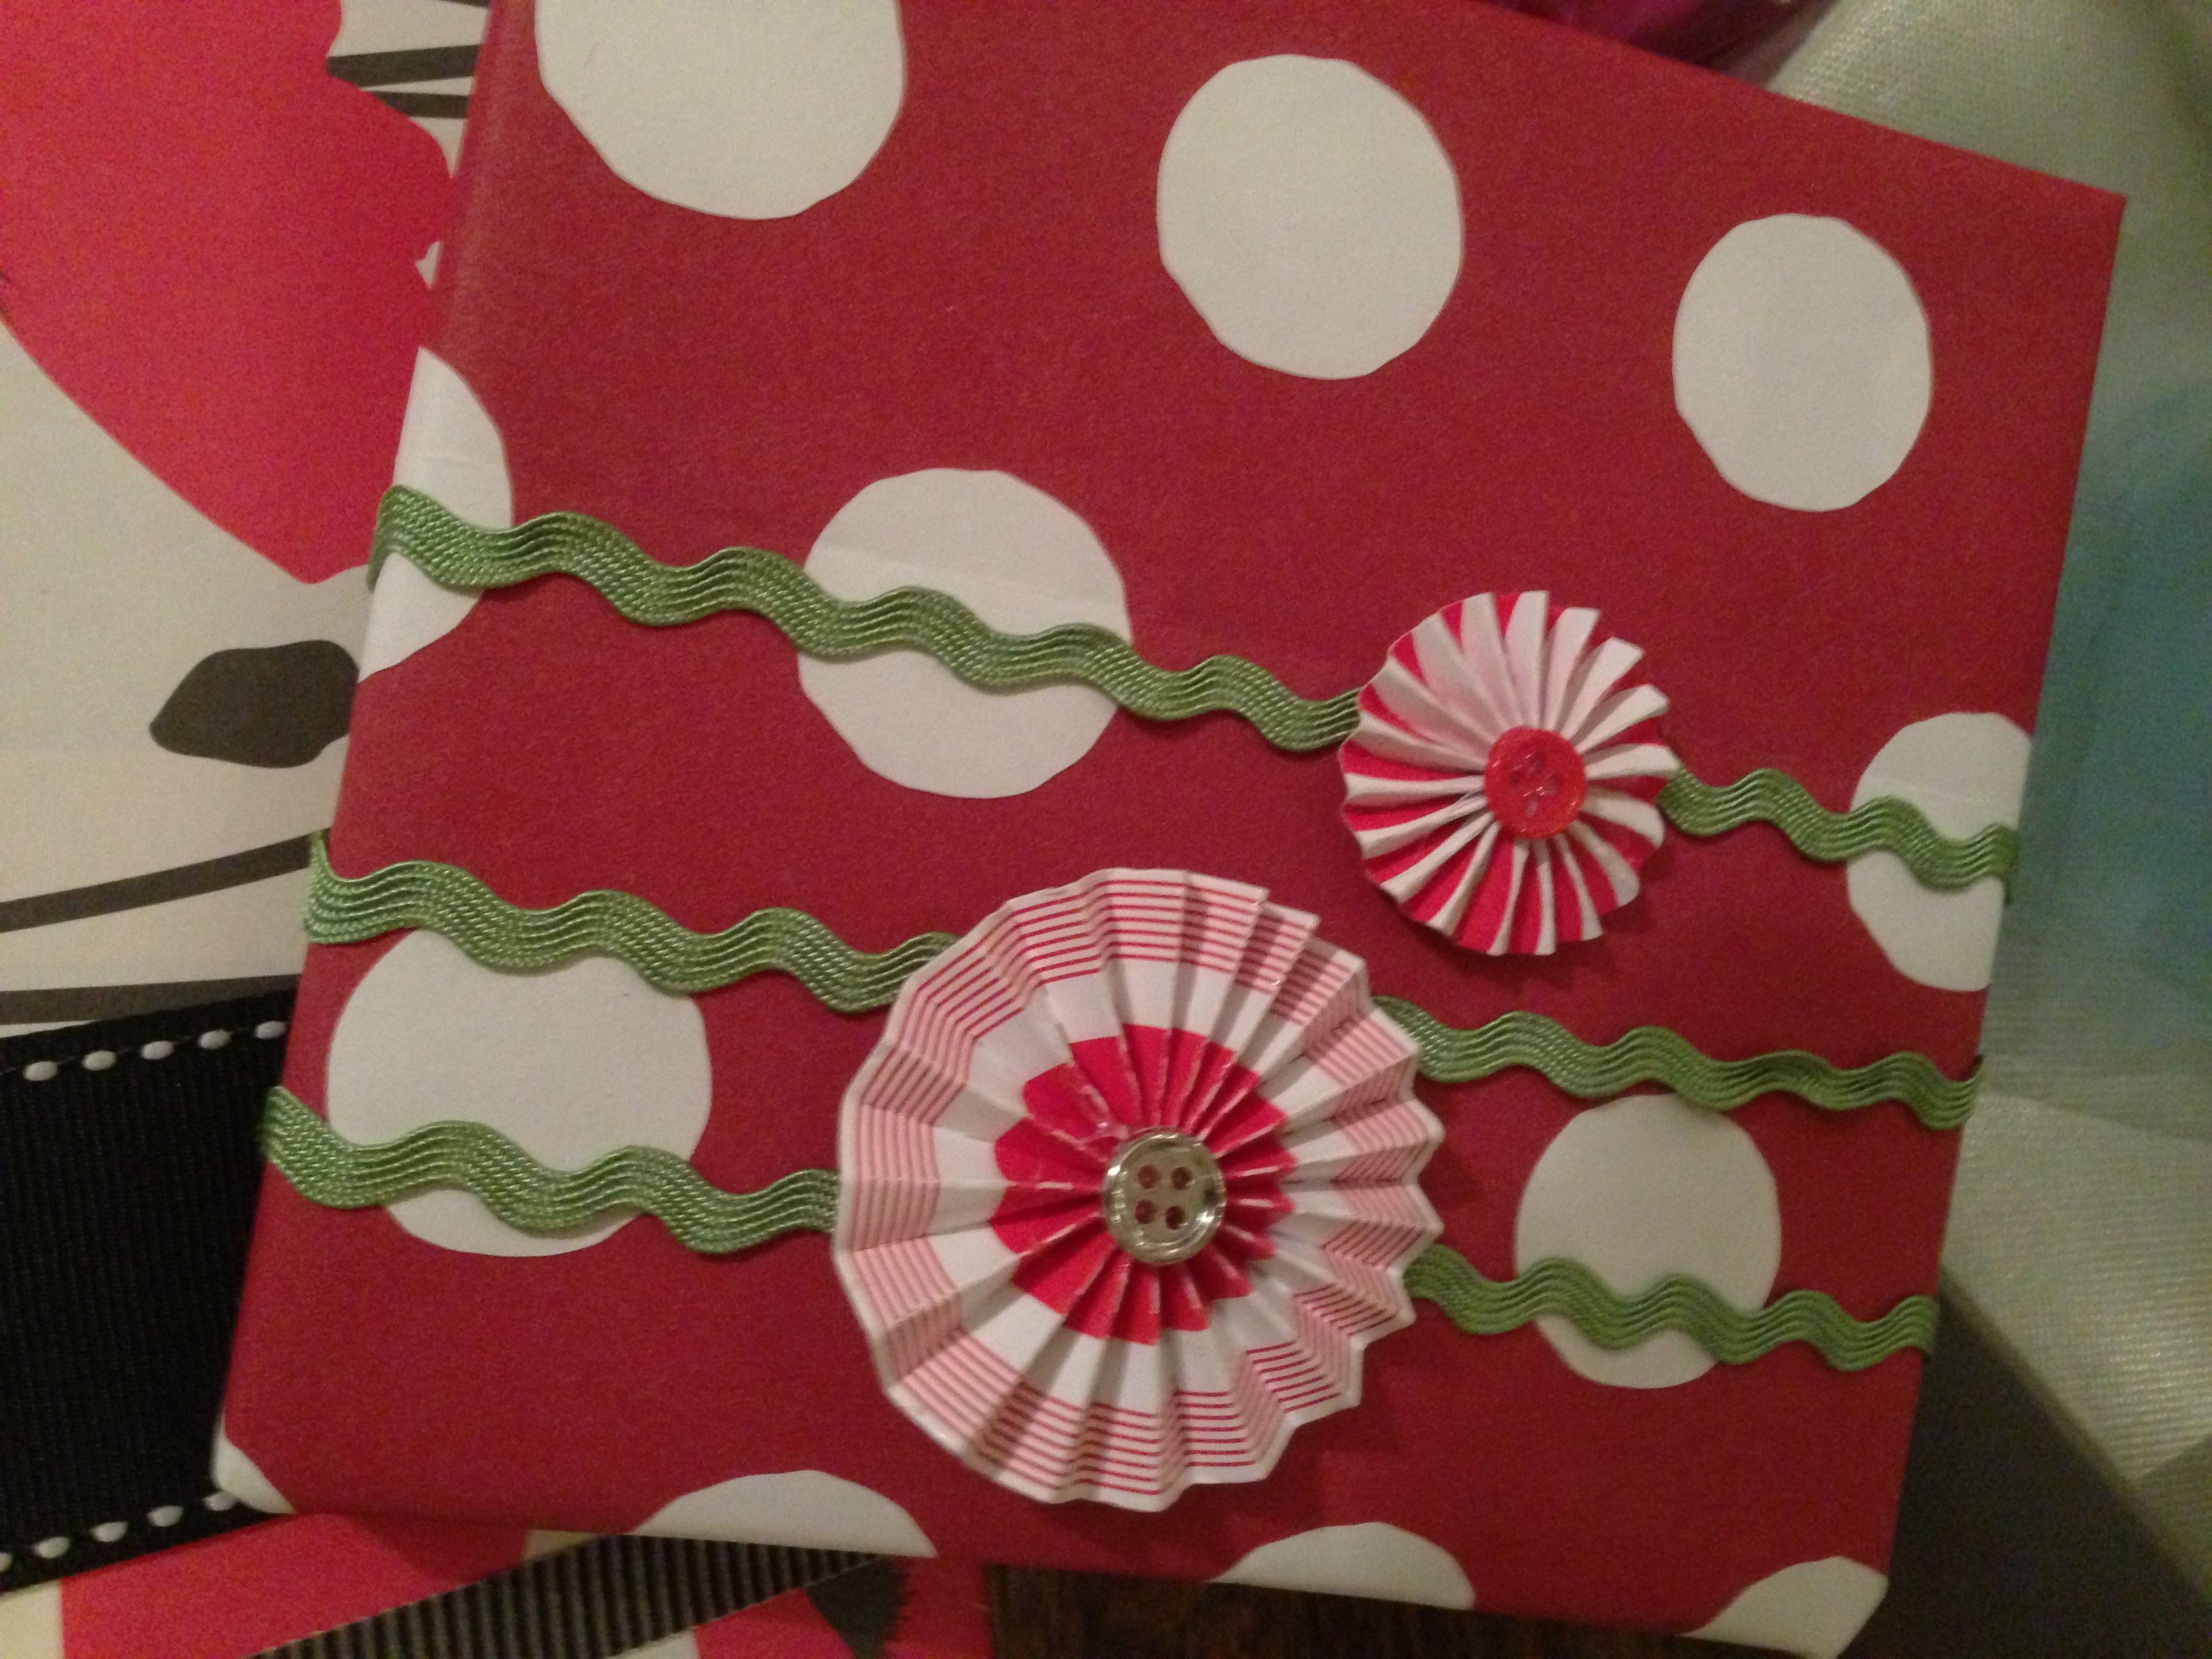 More wrapping